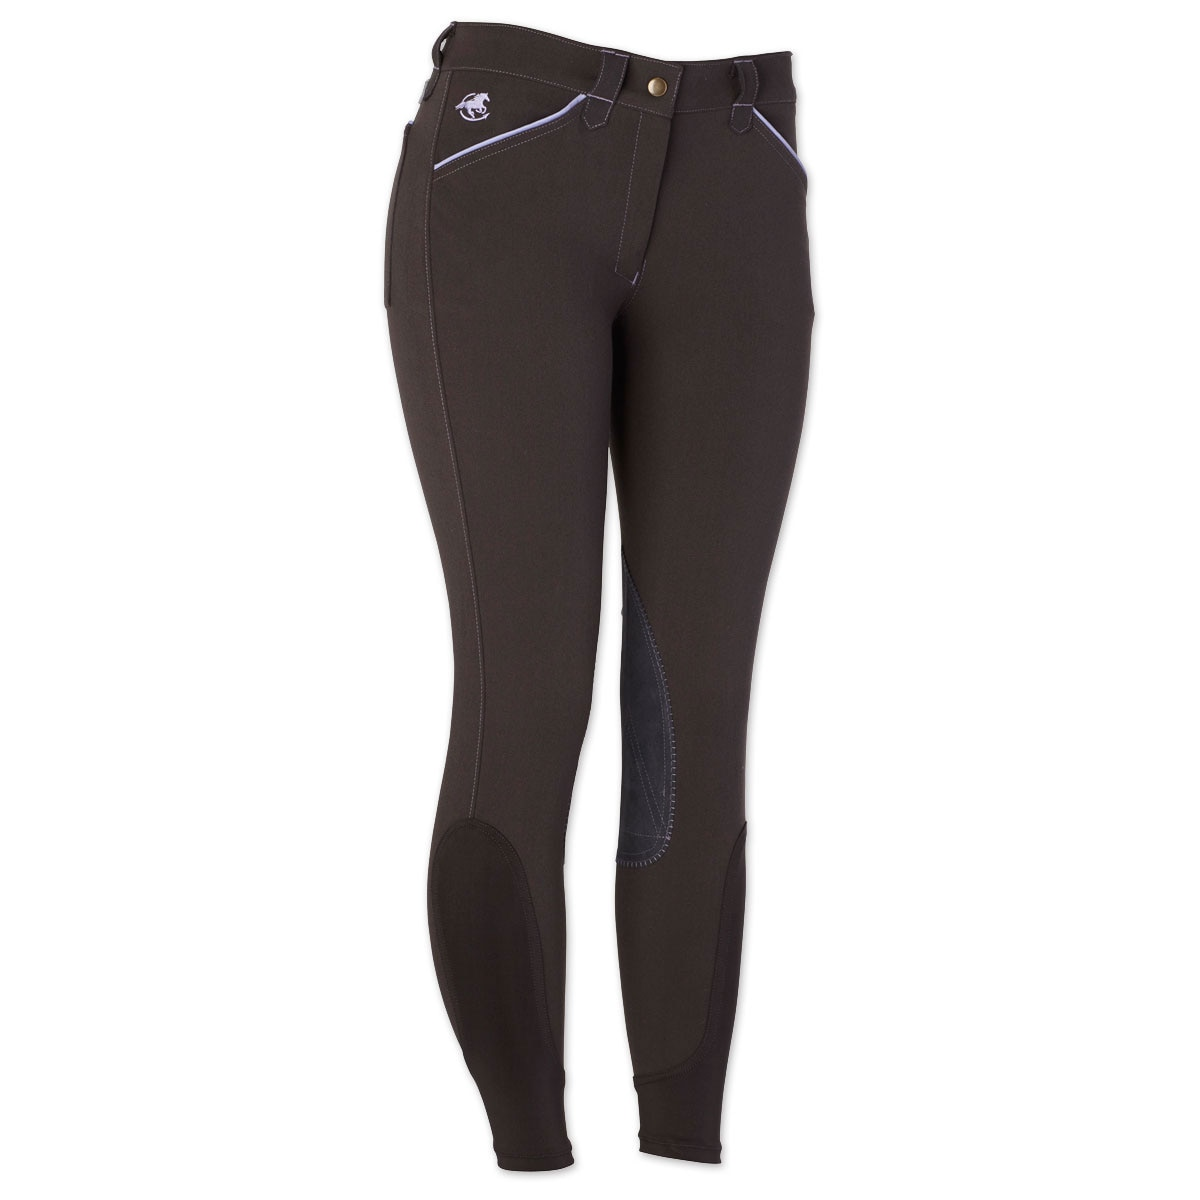 Piper Breeches by SmartPak - Mid Rise Knee Patch - Clearance!